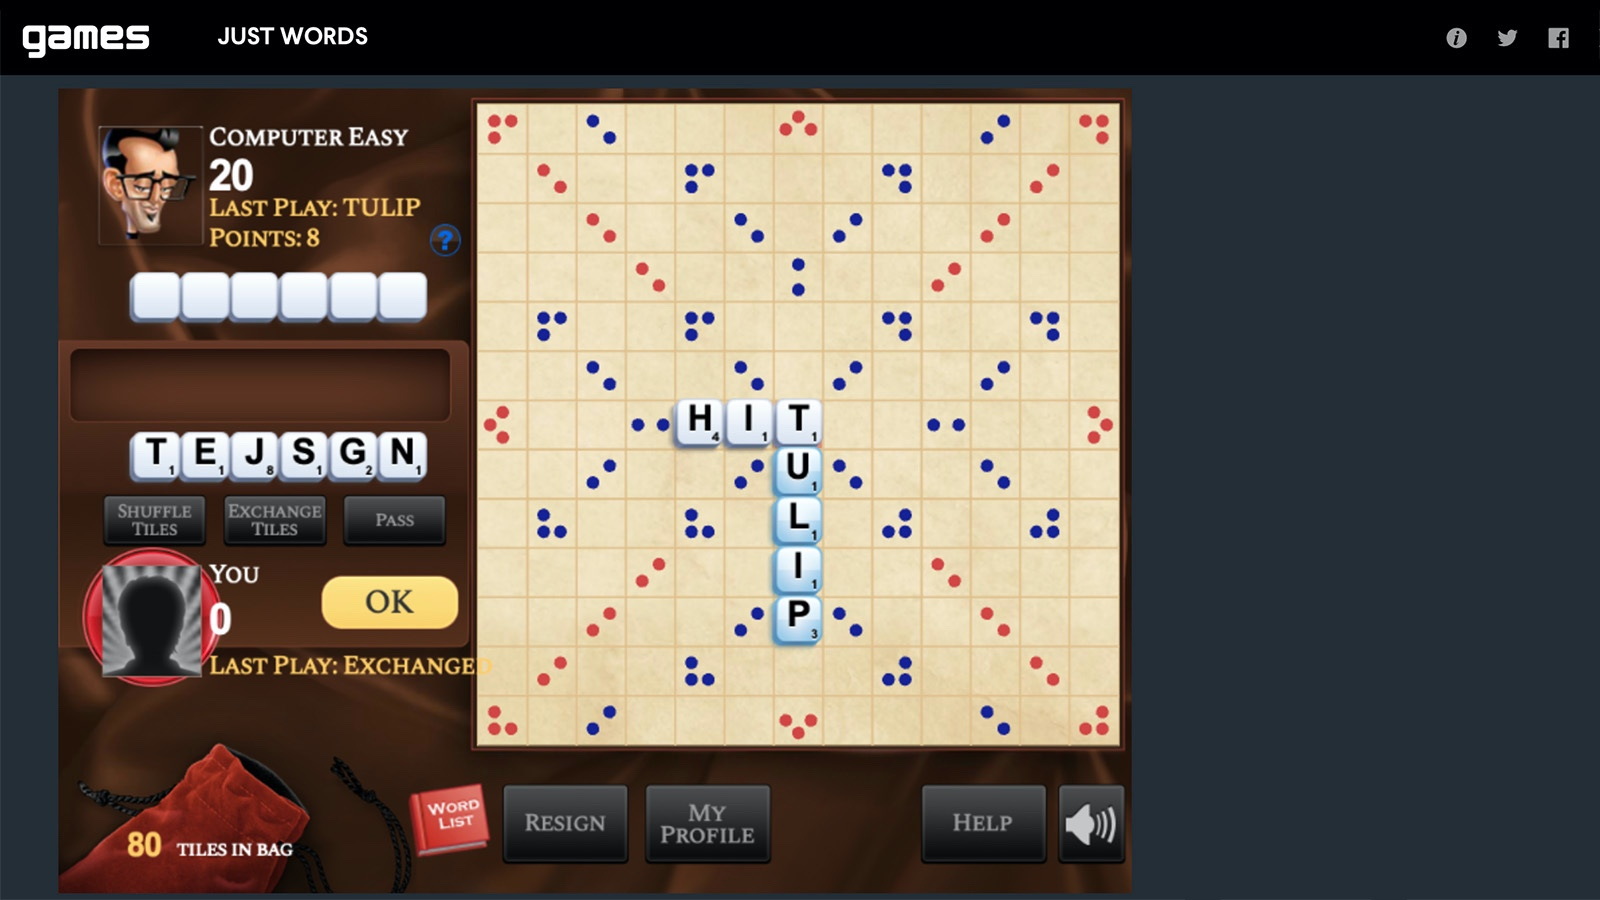 Screenshot of Just Words game